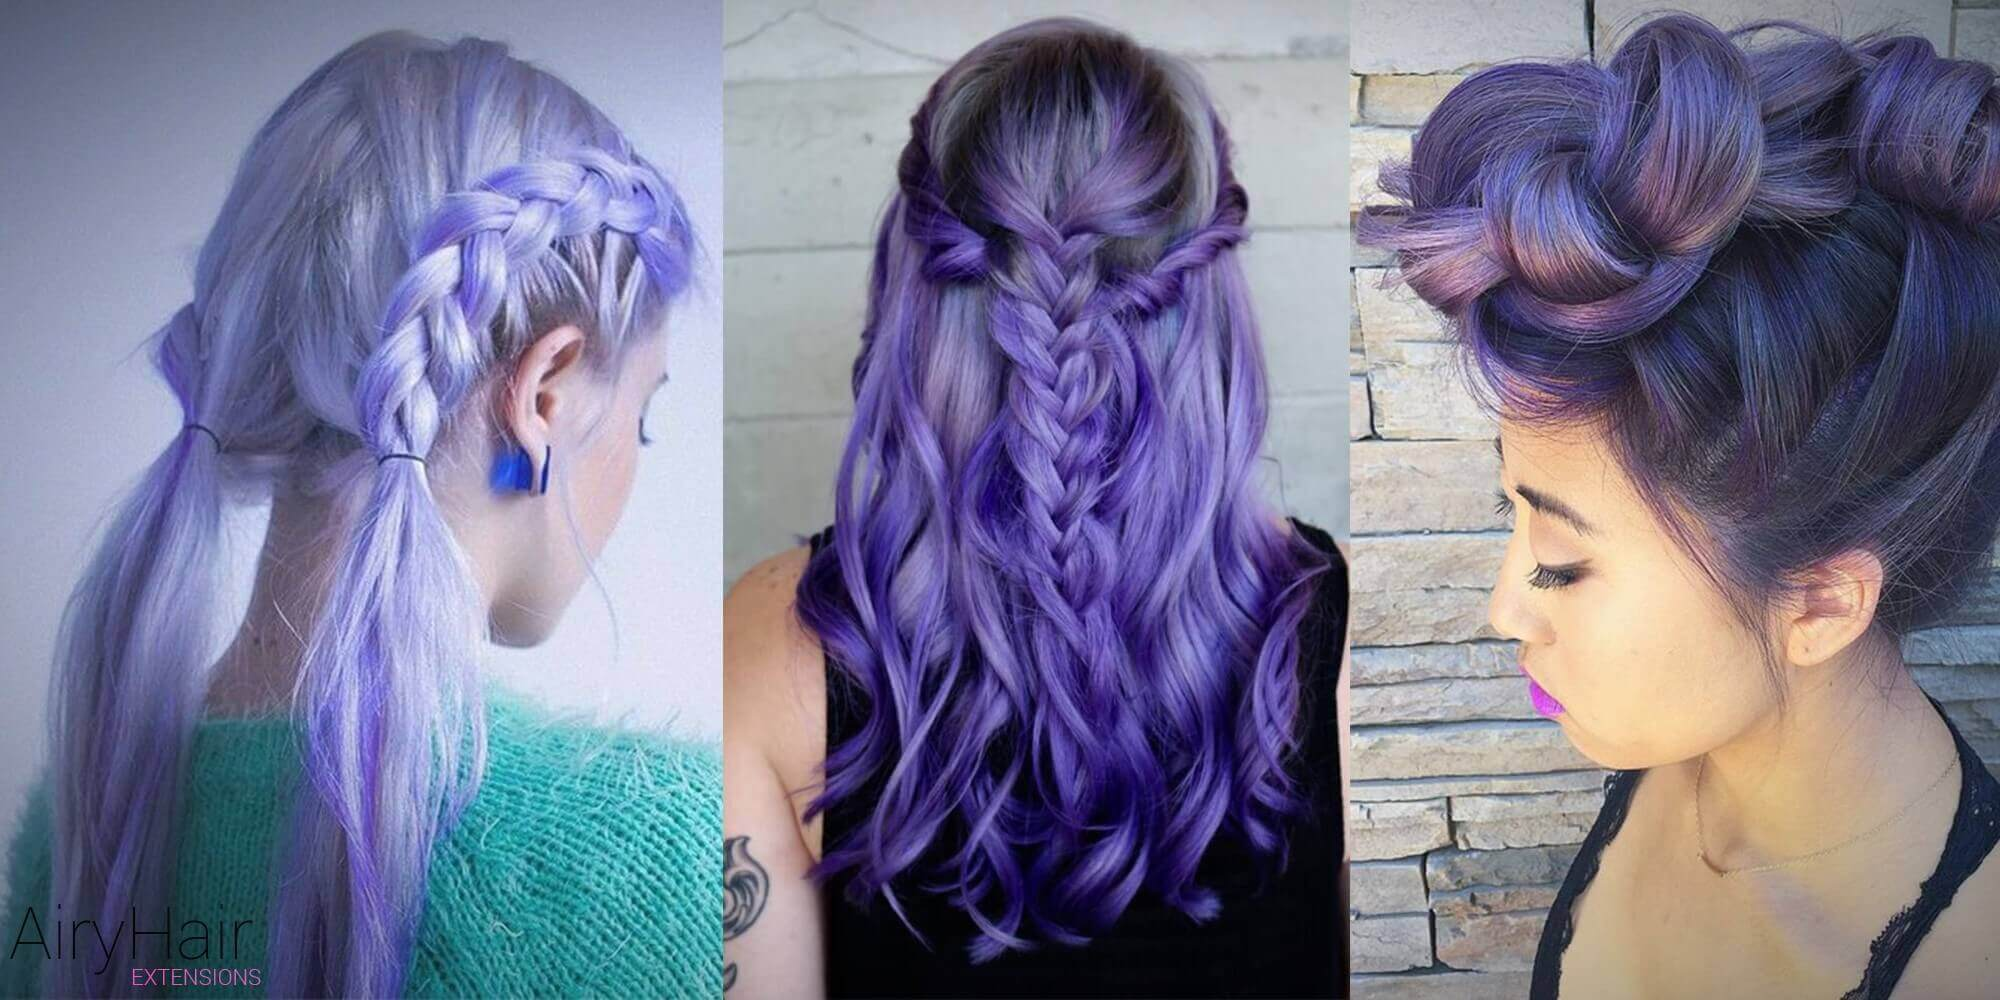 Cool Hair Color Styles: 10+ Cool Pastel Hairstyles For Hair Extension Users